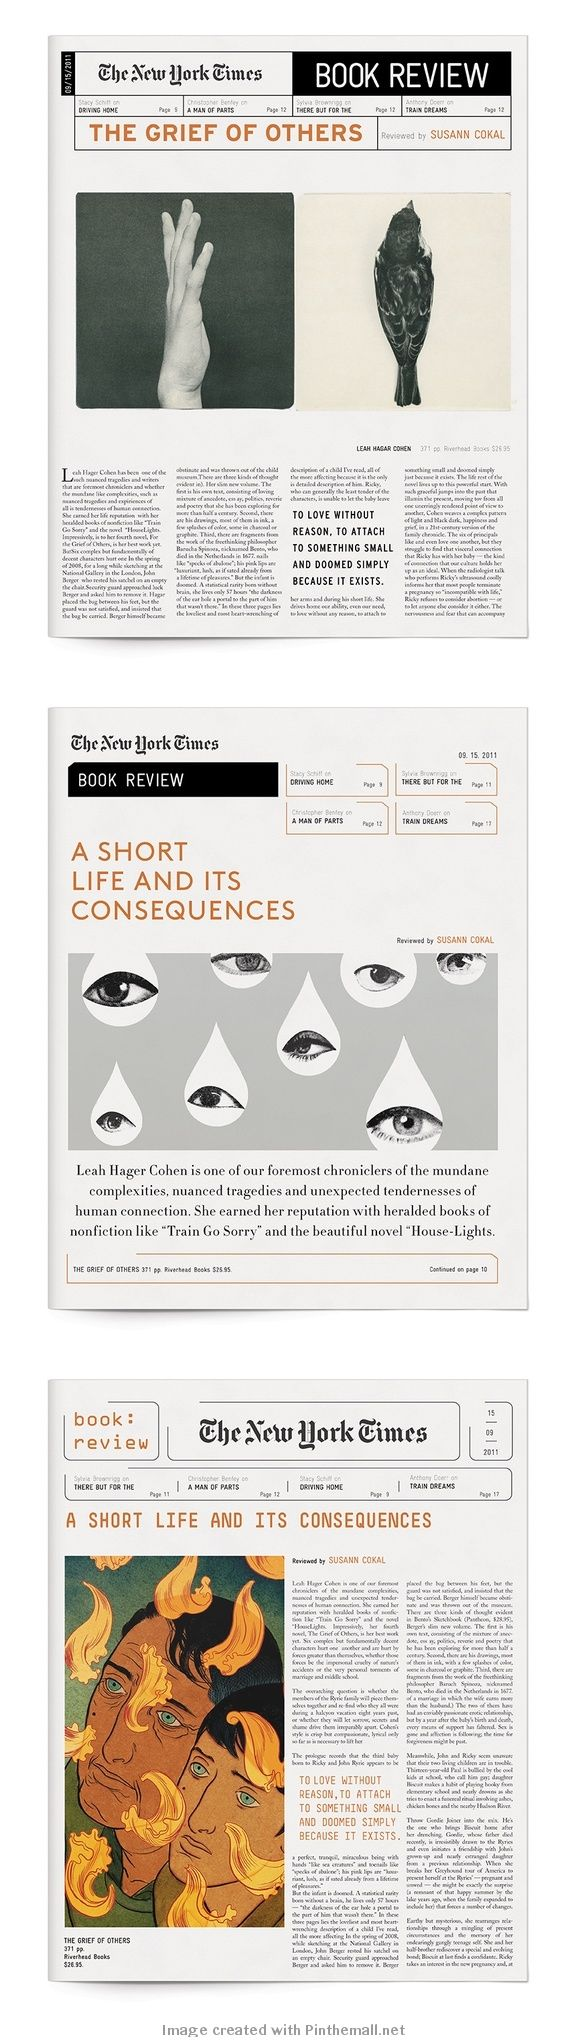 New York Times Book Review | Yasmin Malki| Graphis